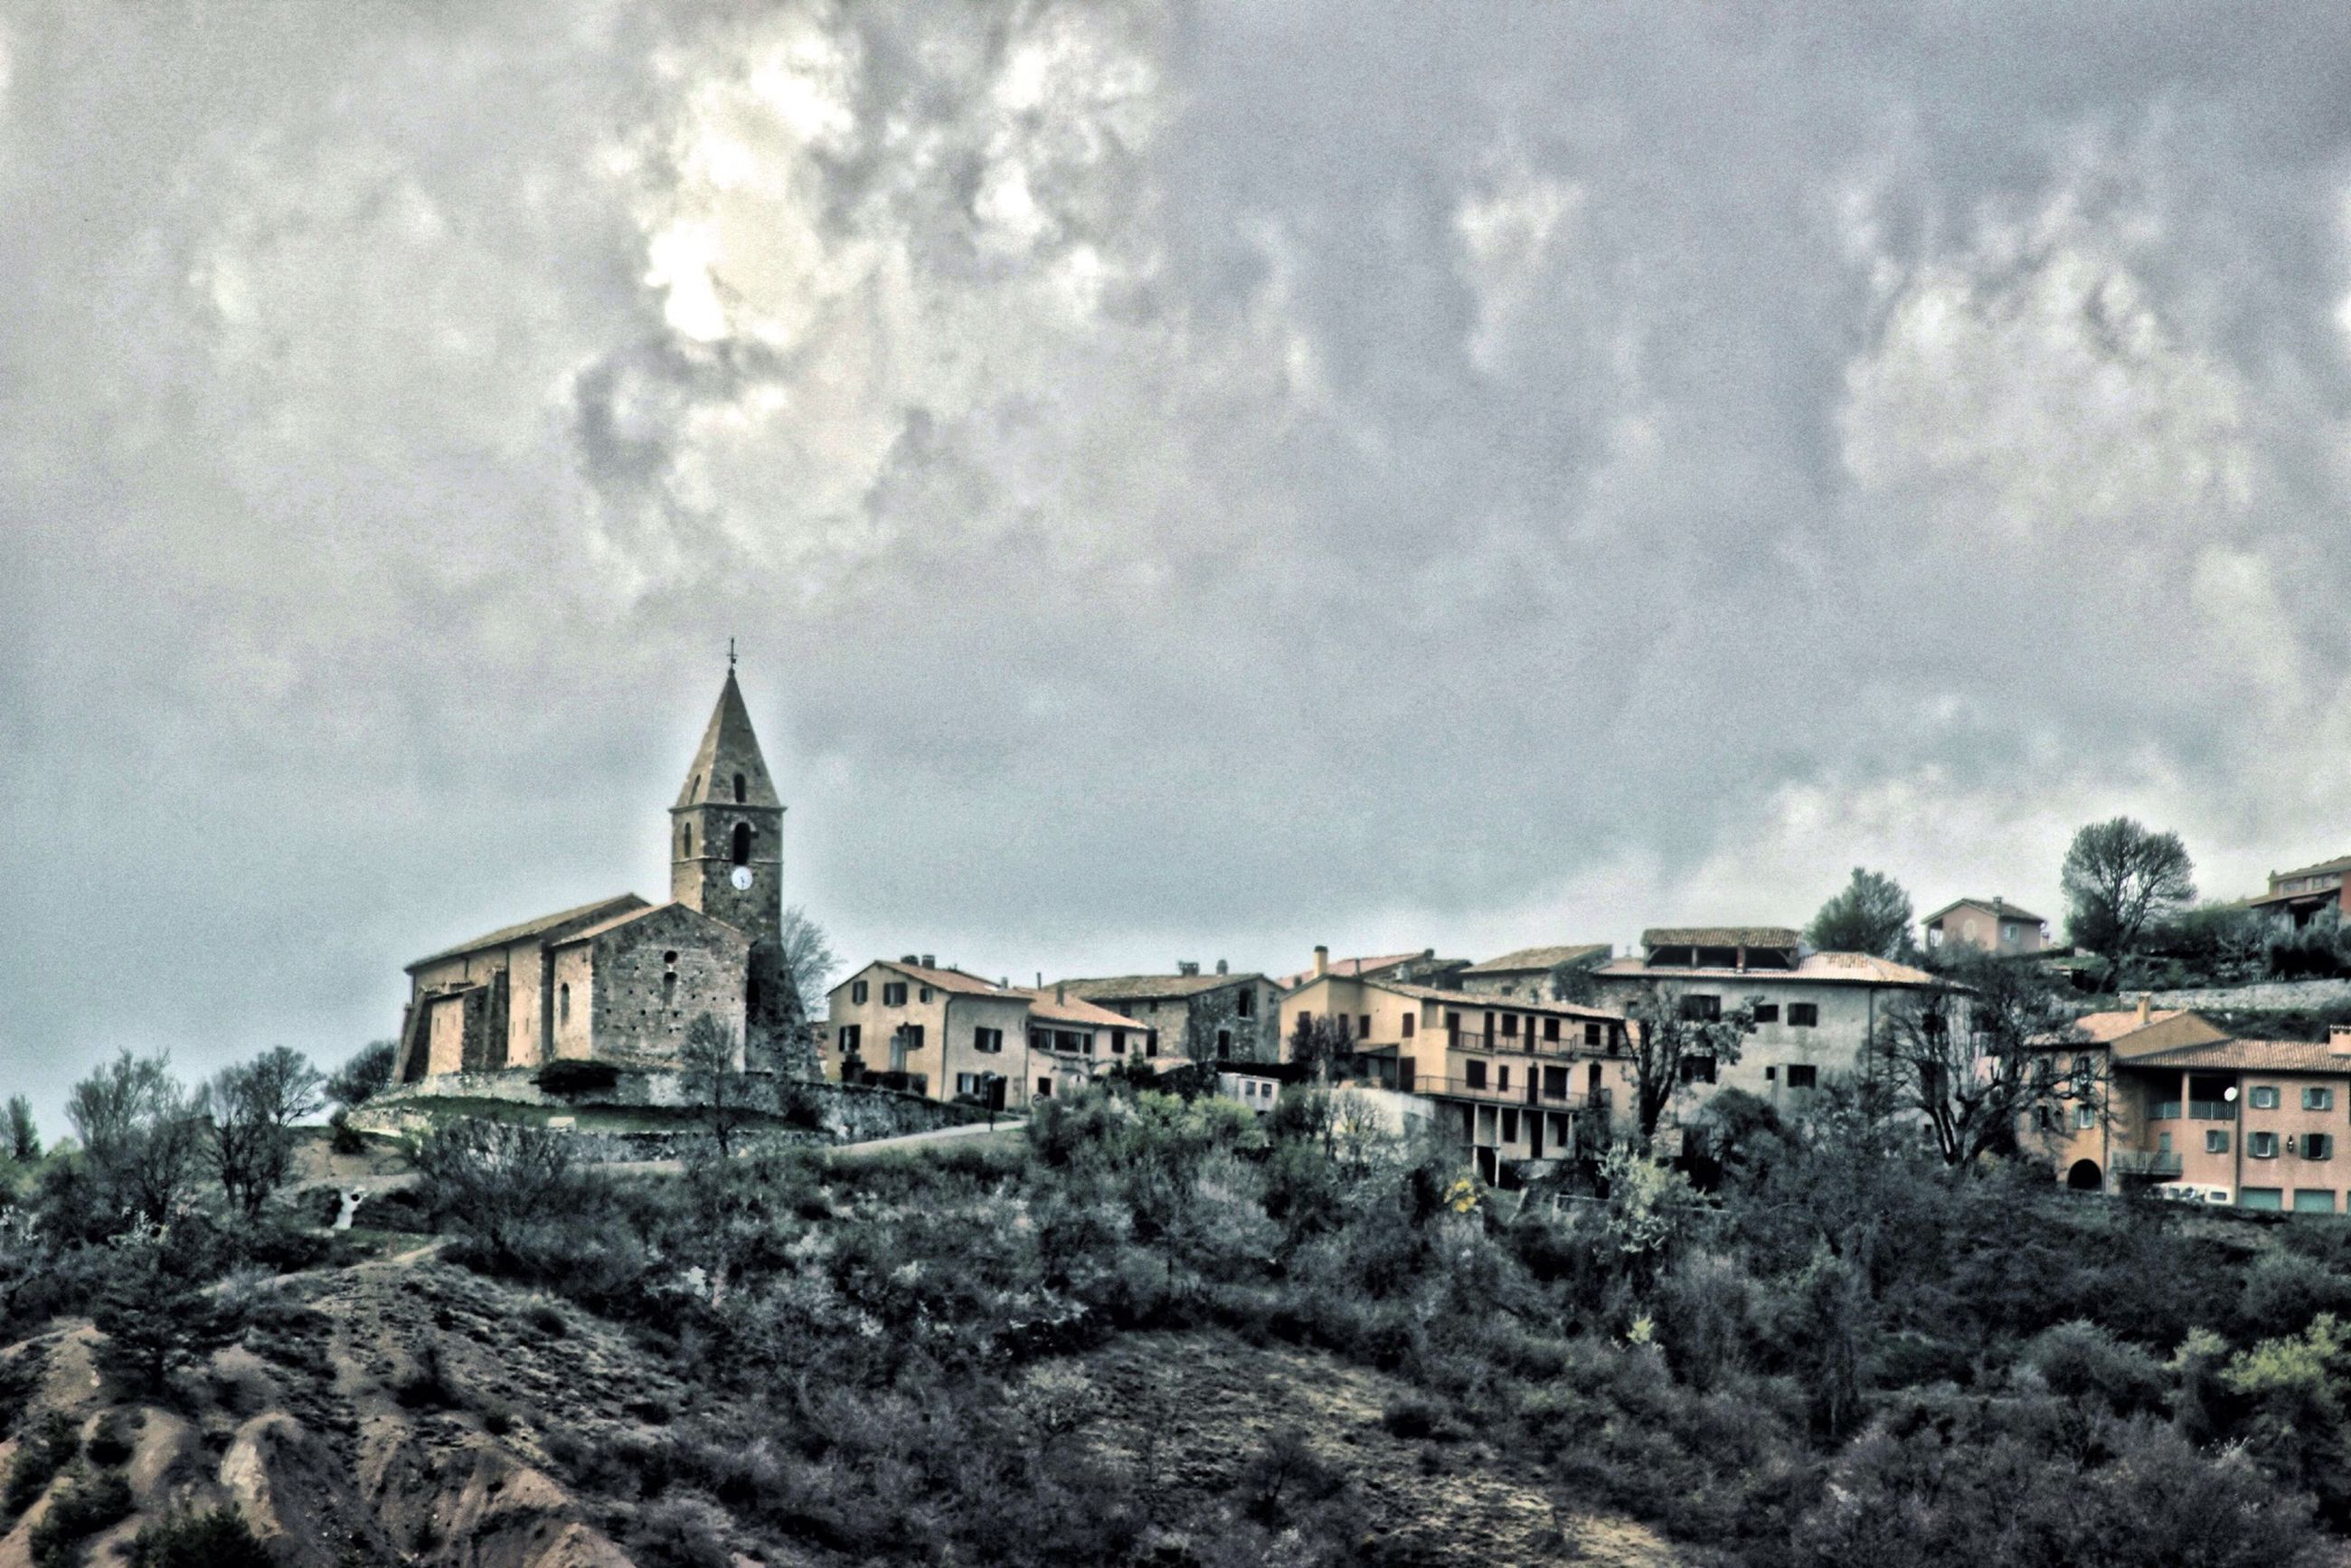 architecture, building exterior, built structure, sky, cloud - sky, tree, house, residential structure, cloudy, residential building, cloud, town, day, outdoors, no people, history, church, residential district, mountain, hill